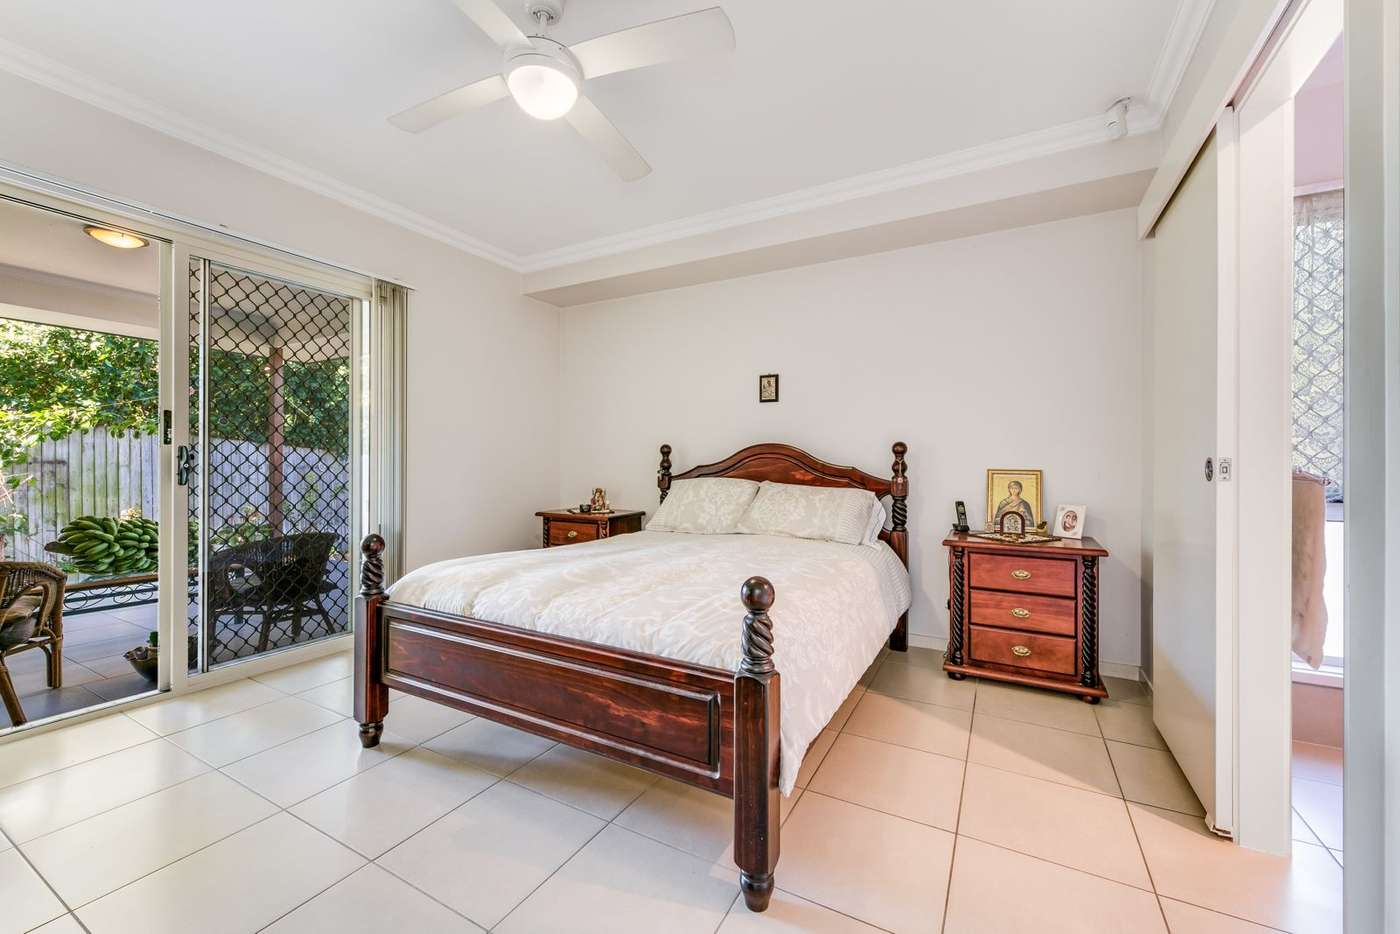 Sixth view of Homely house listing, 99 Winstanley Street, Carina Heights QLD 4152